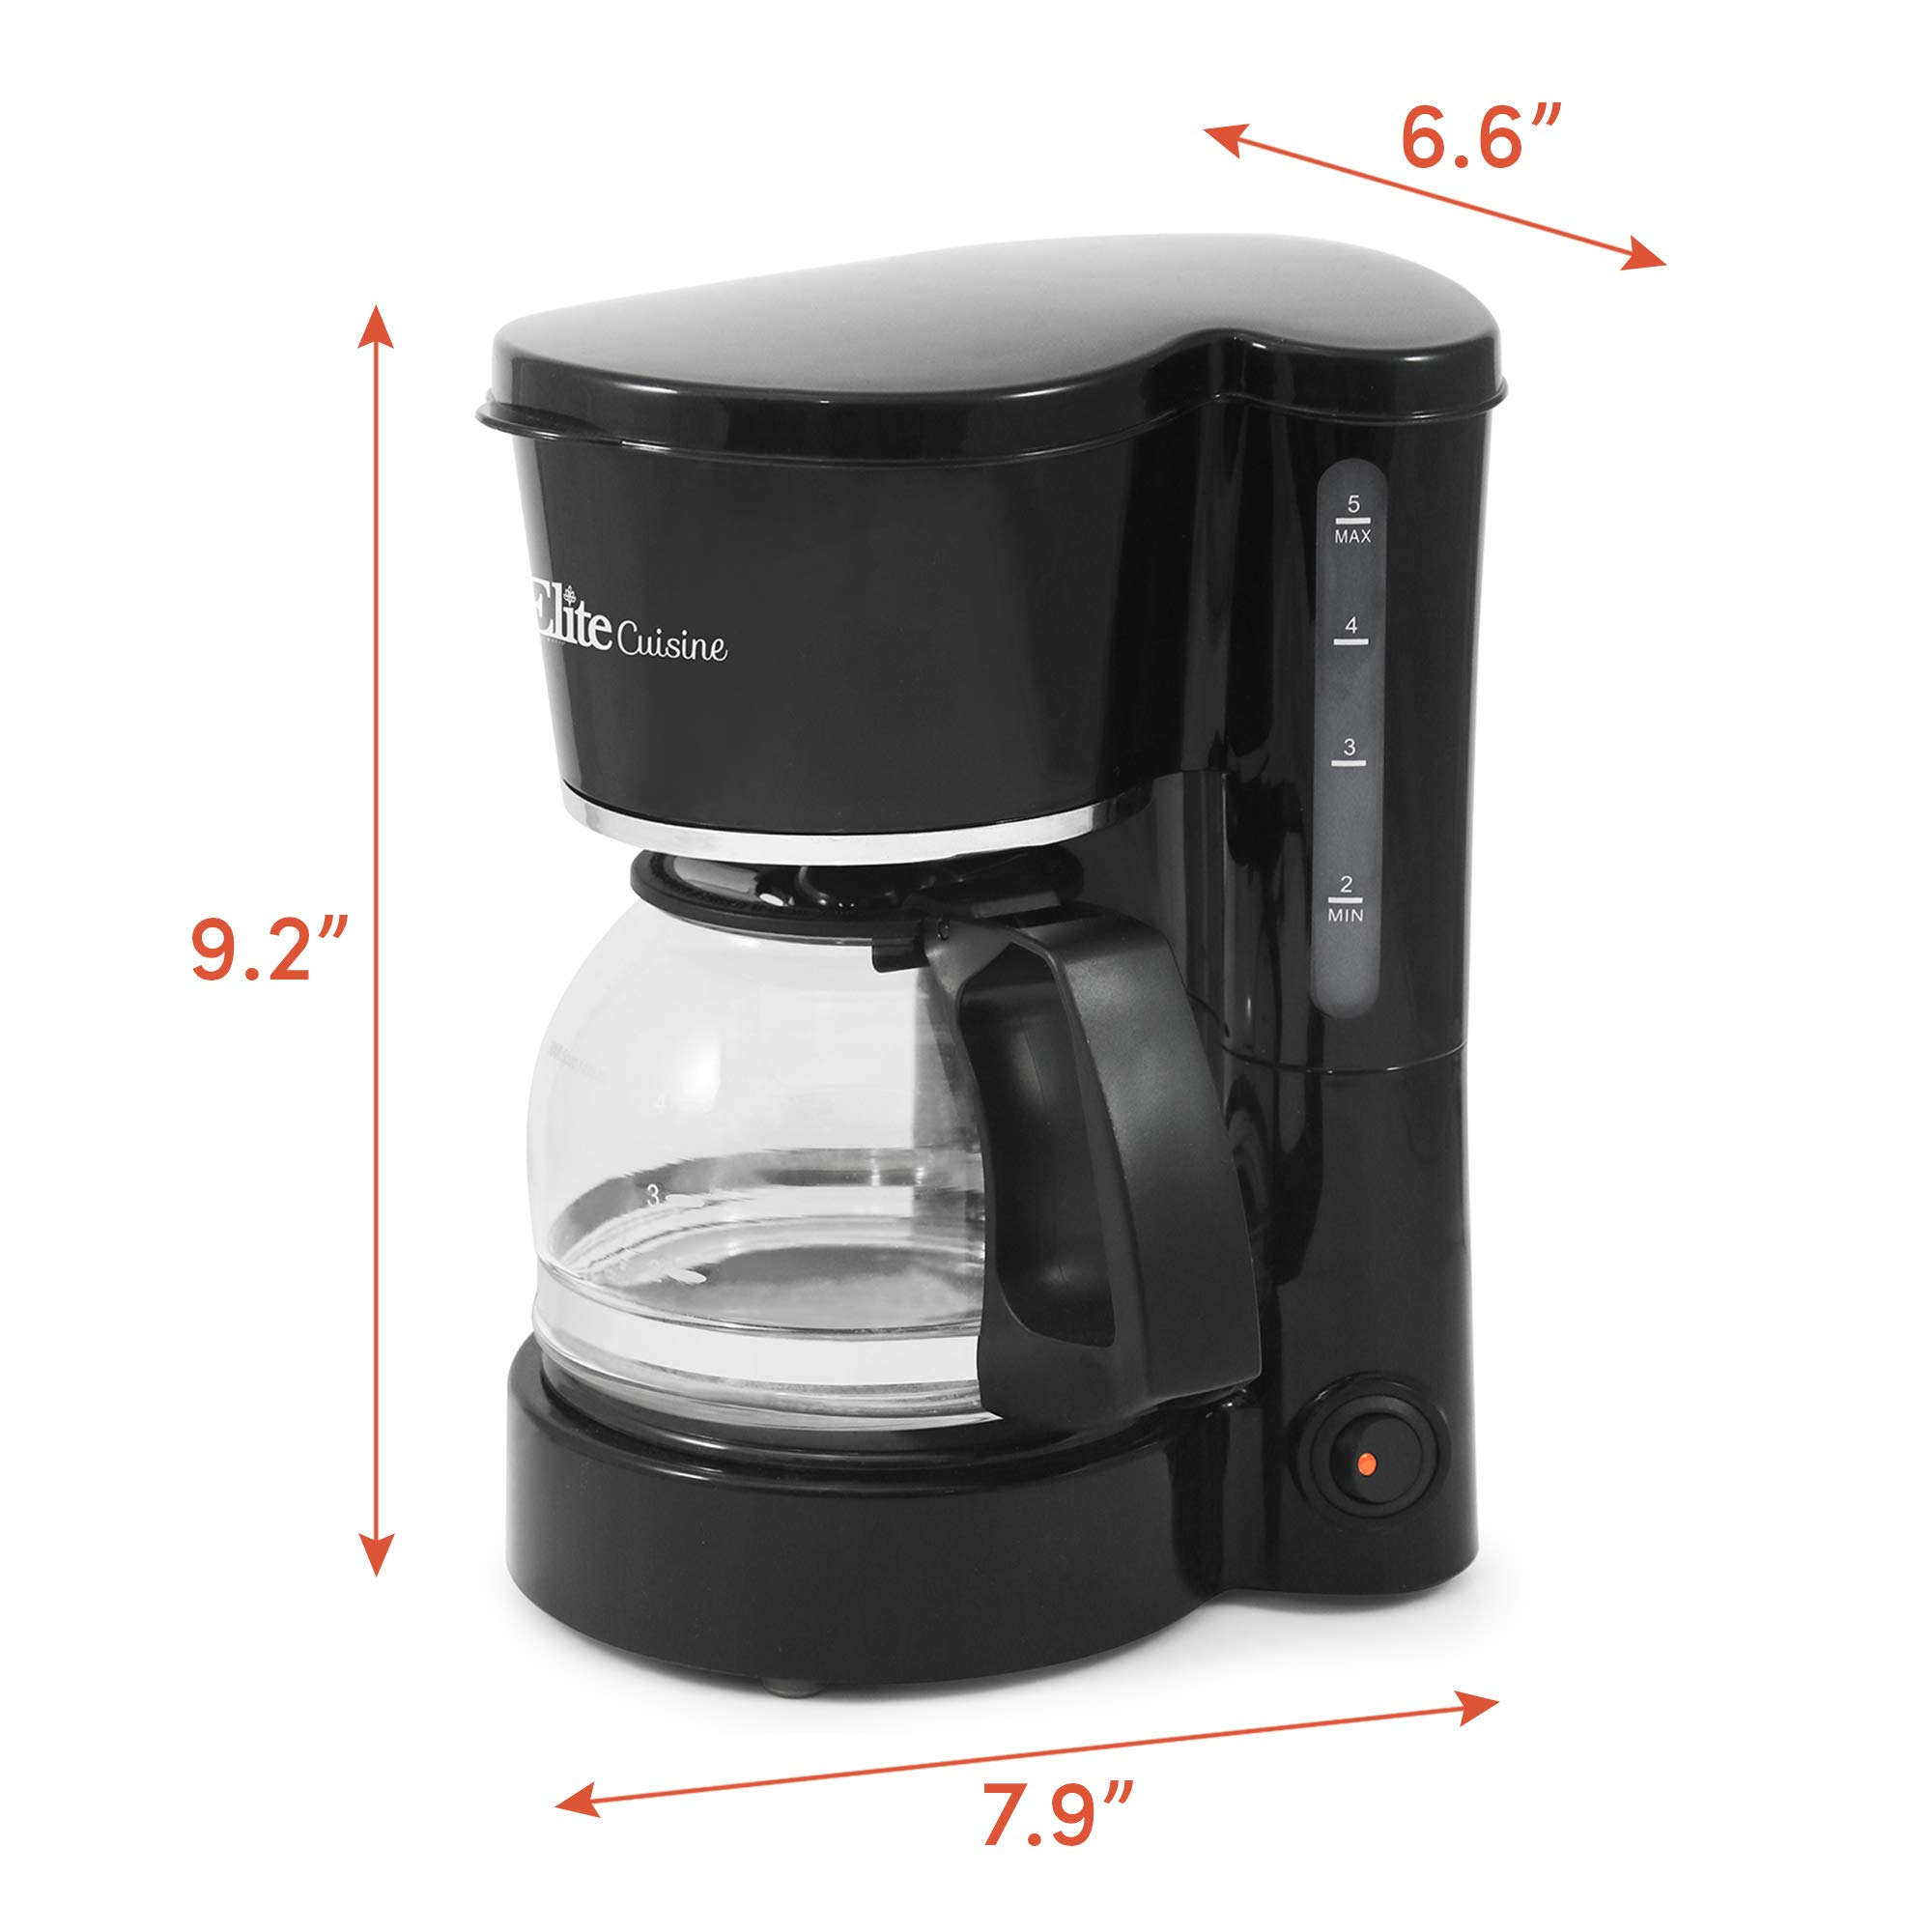 Elite Cuisine EHC-5055 Automatic Brew & Drip Coffee Maker with Pause N Serve Reusable Filter, On/Off Switch, Water Level Indicator, 5 Cup Capacity, Black by Maxi-Matic (Image #7)